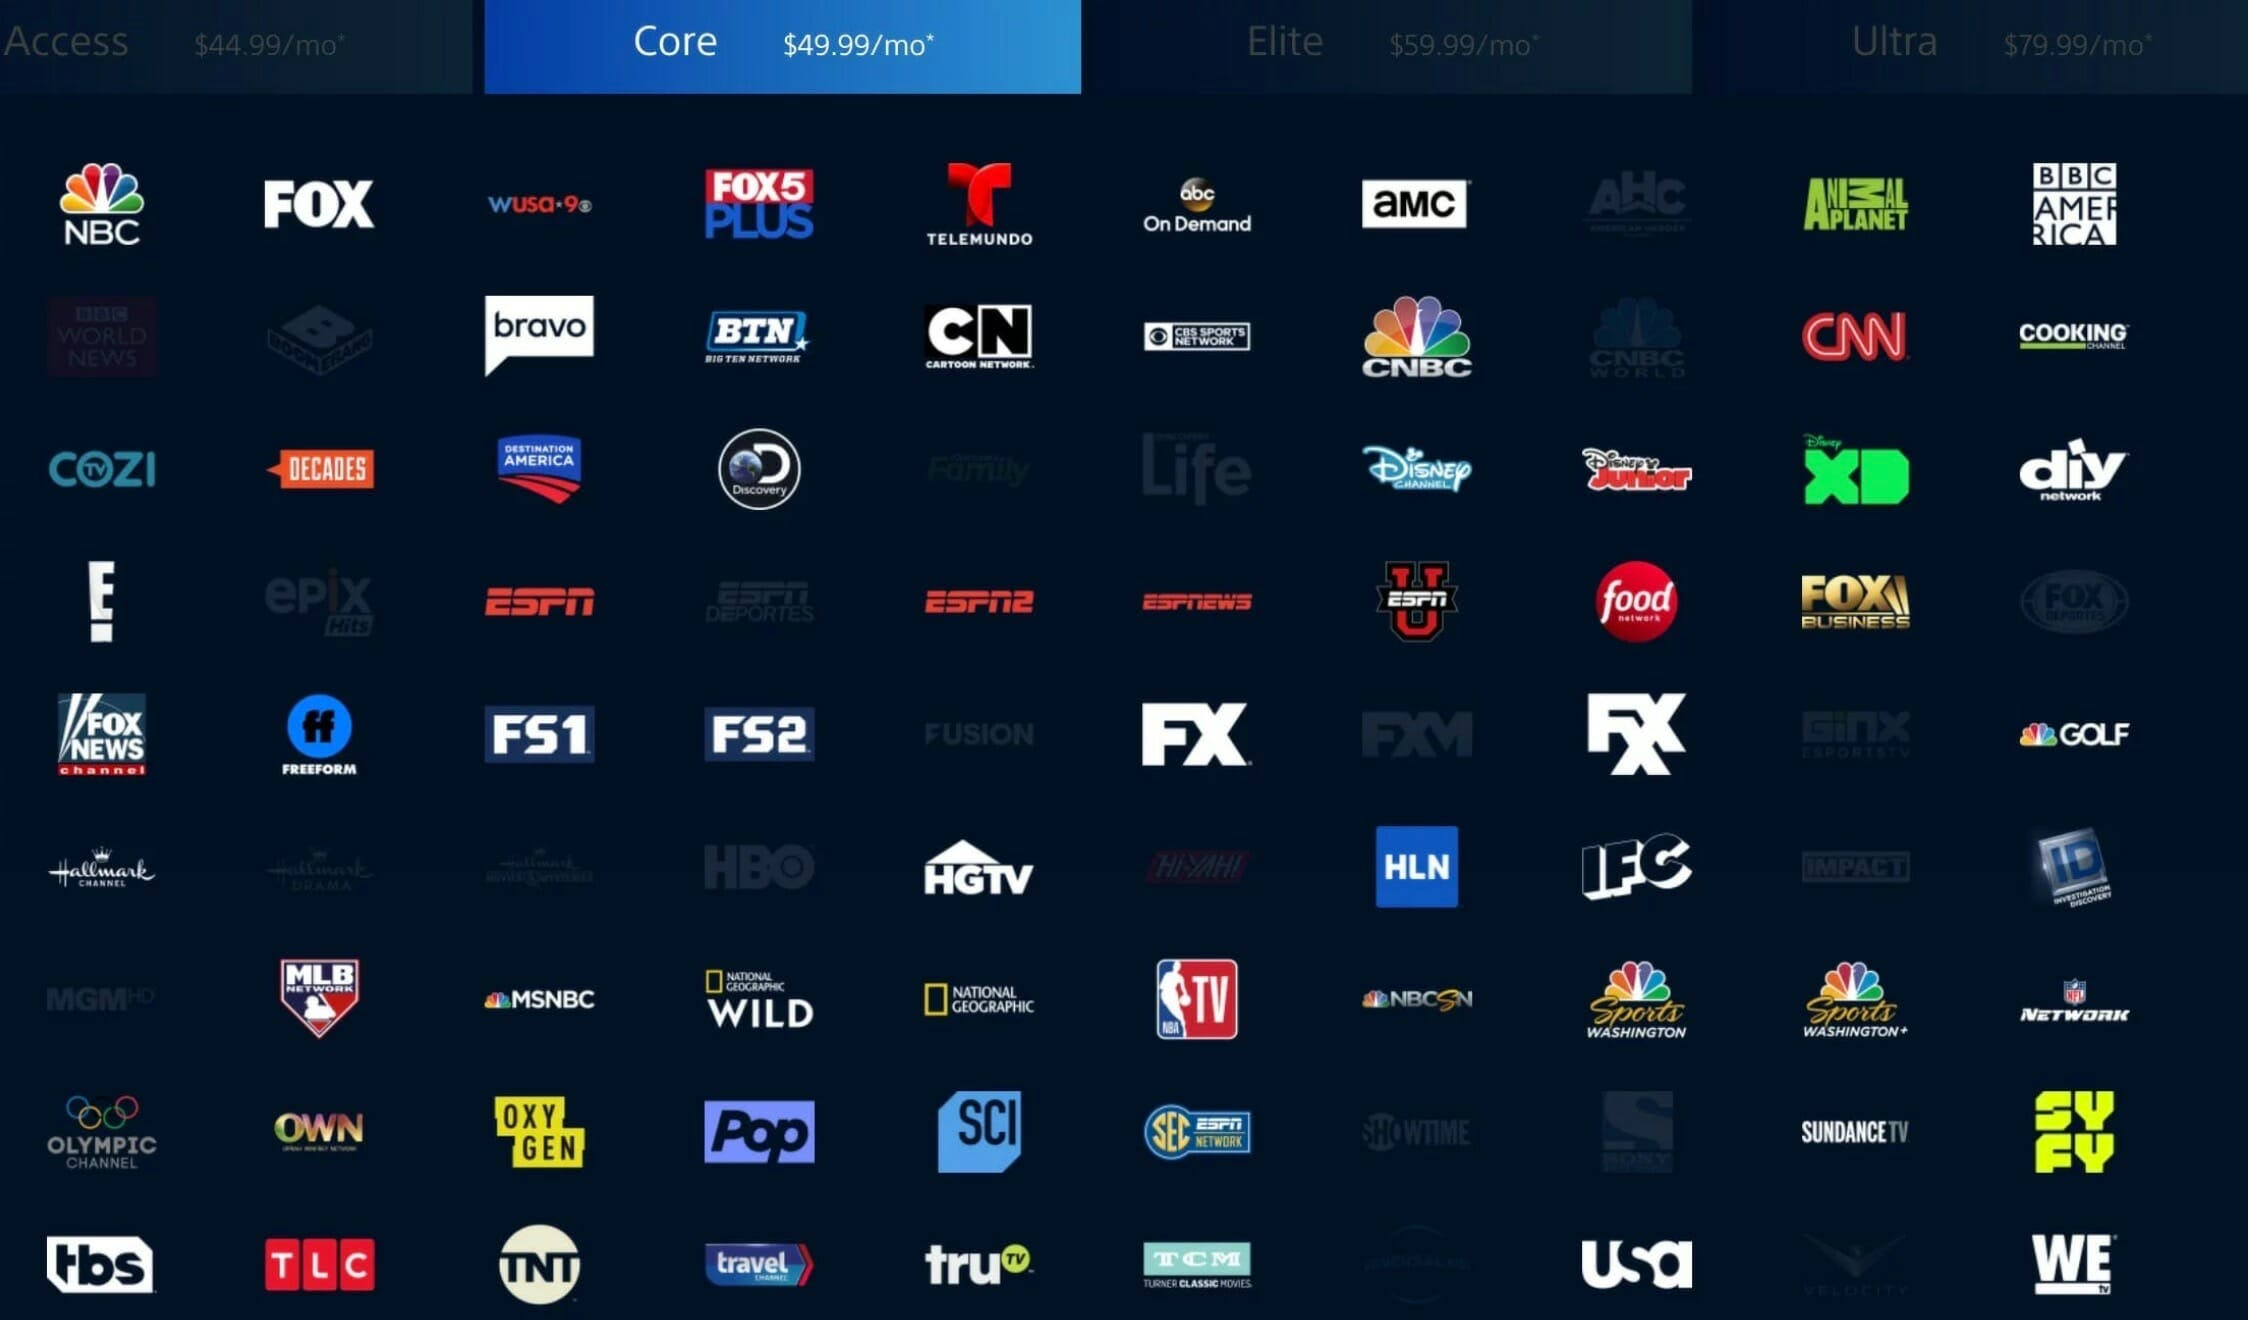 fifa womens world cup live stream playstation vue core